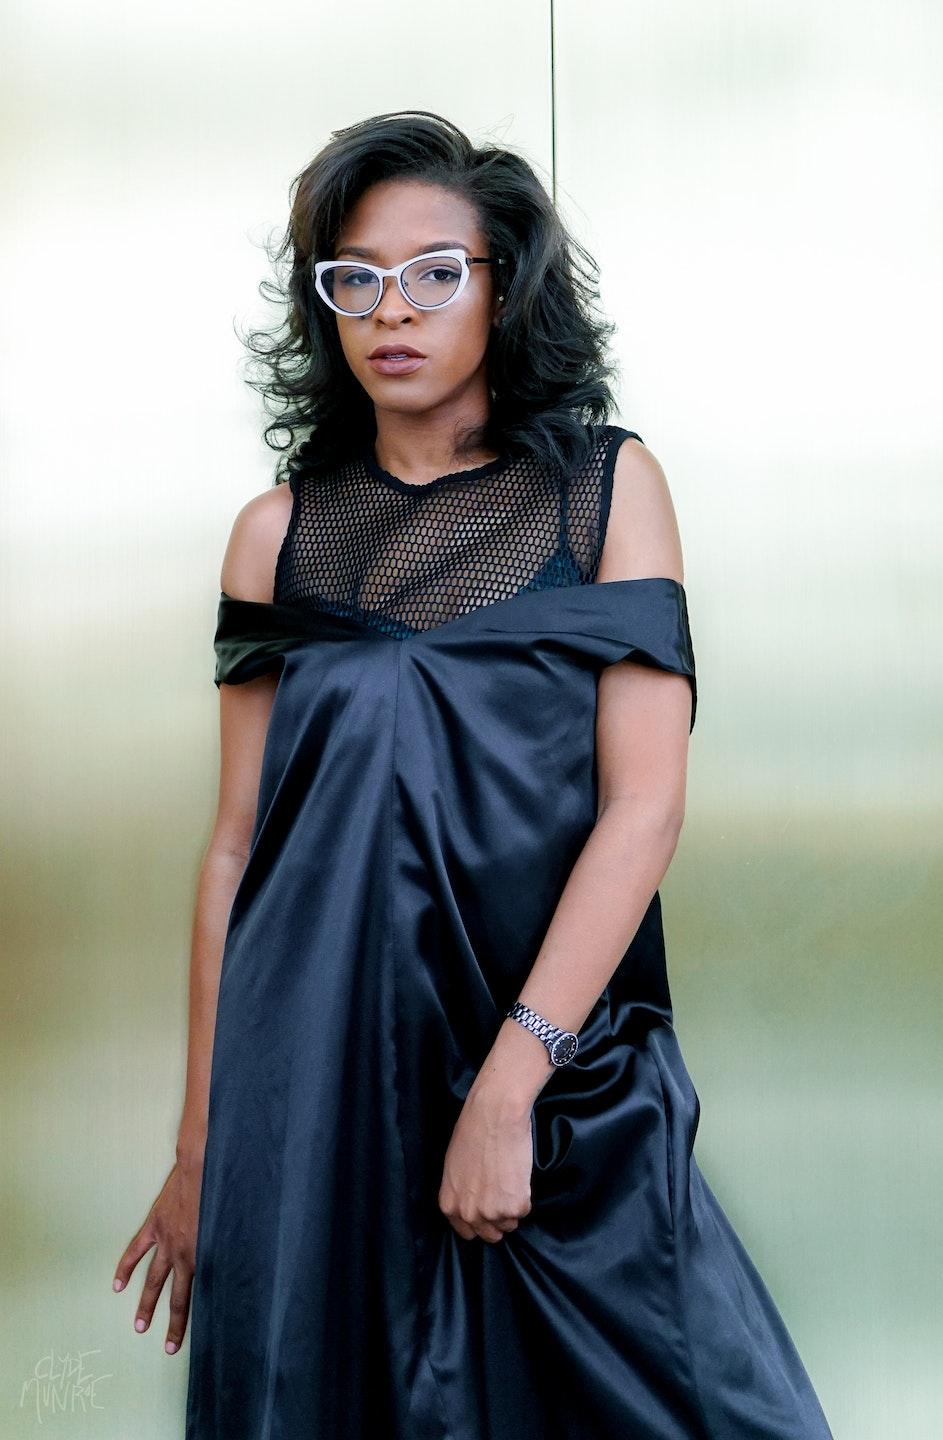 Tayler is wearing the Eugene Taylor black v-neck shoulder dress | Photo by Clyde Munroe